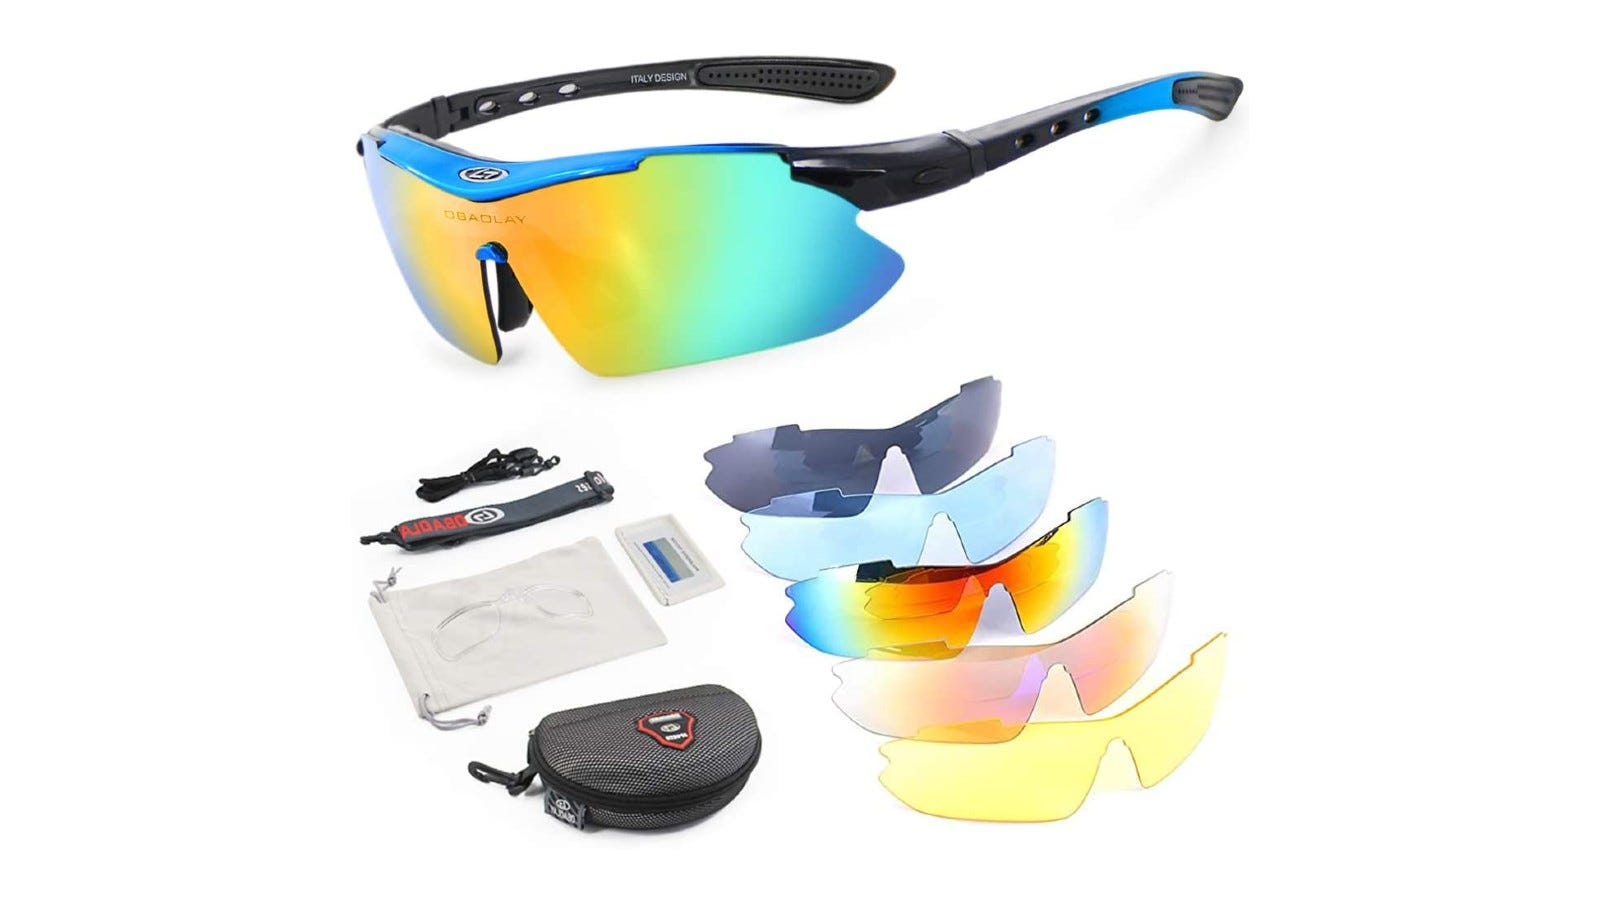 sporty sunglasses with five extra frames and other accessories